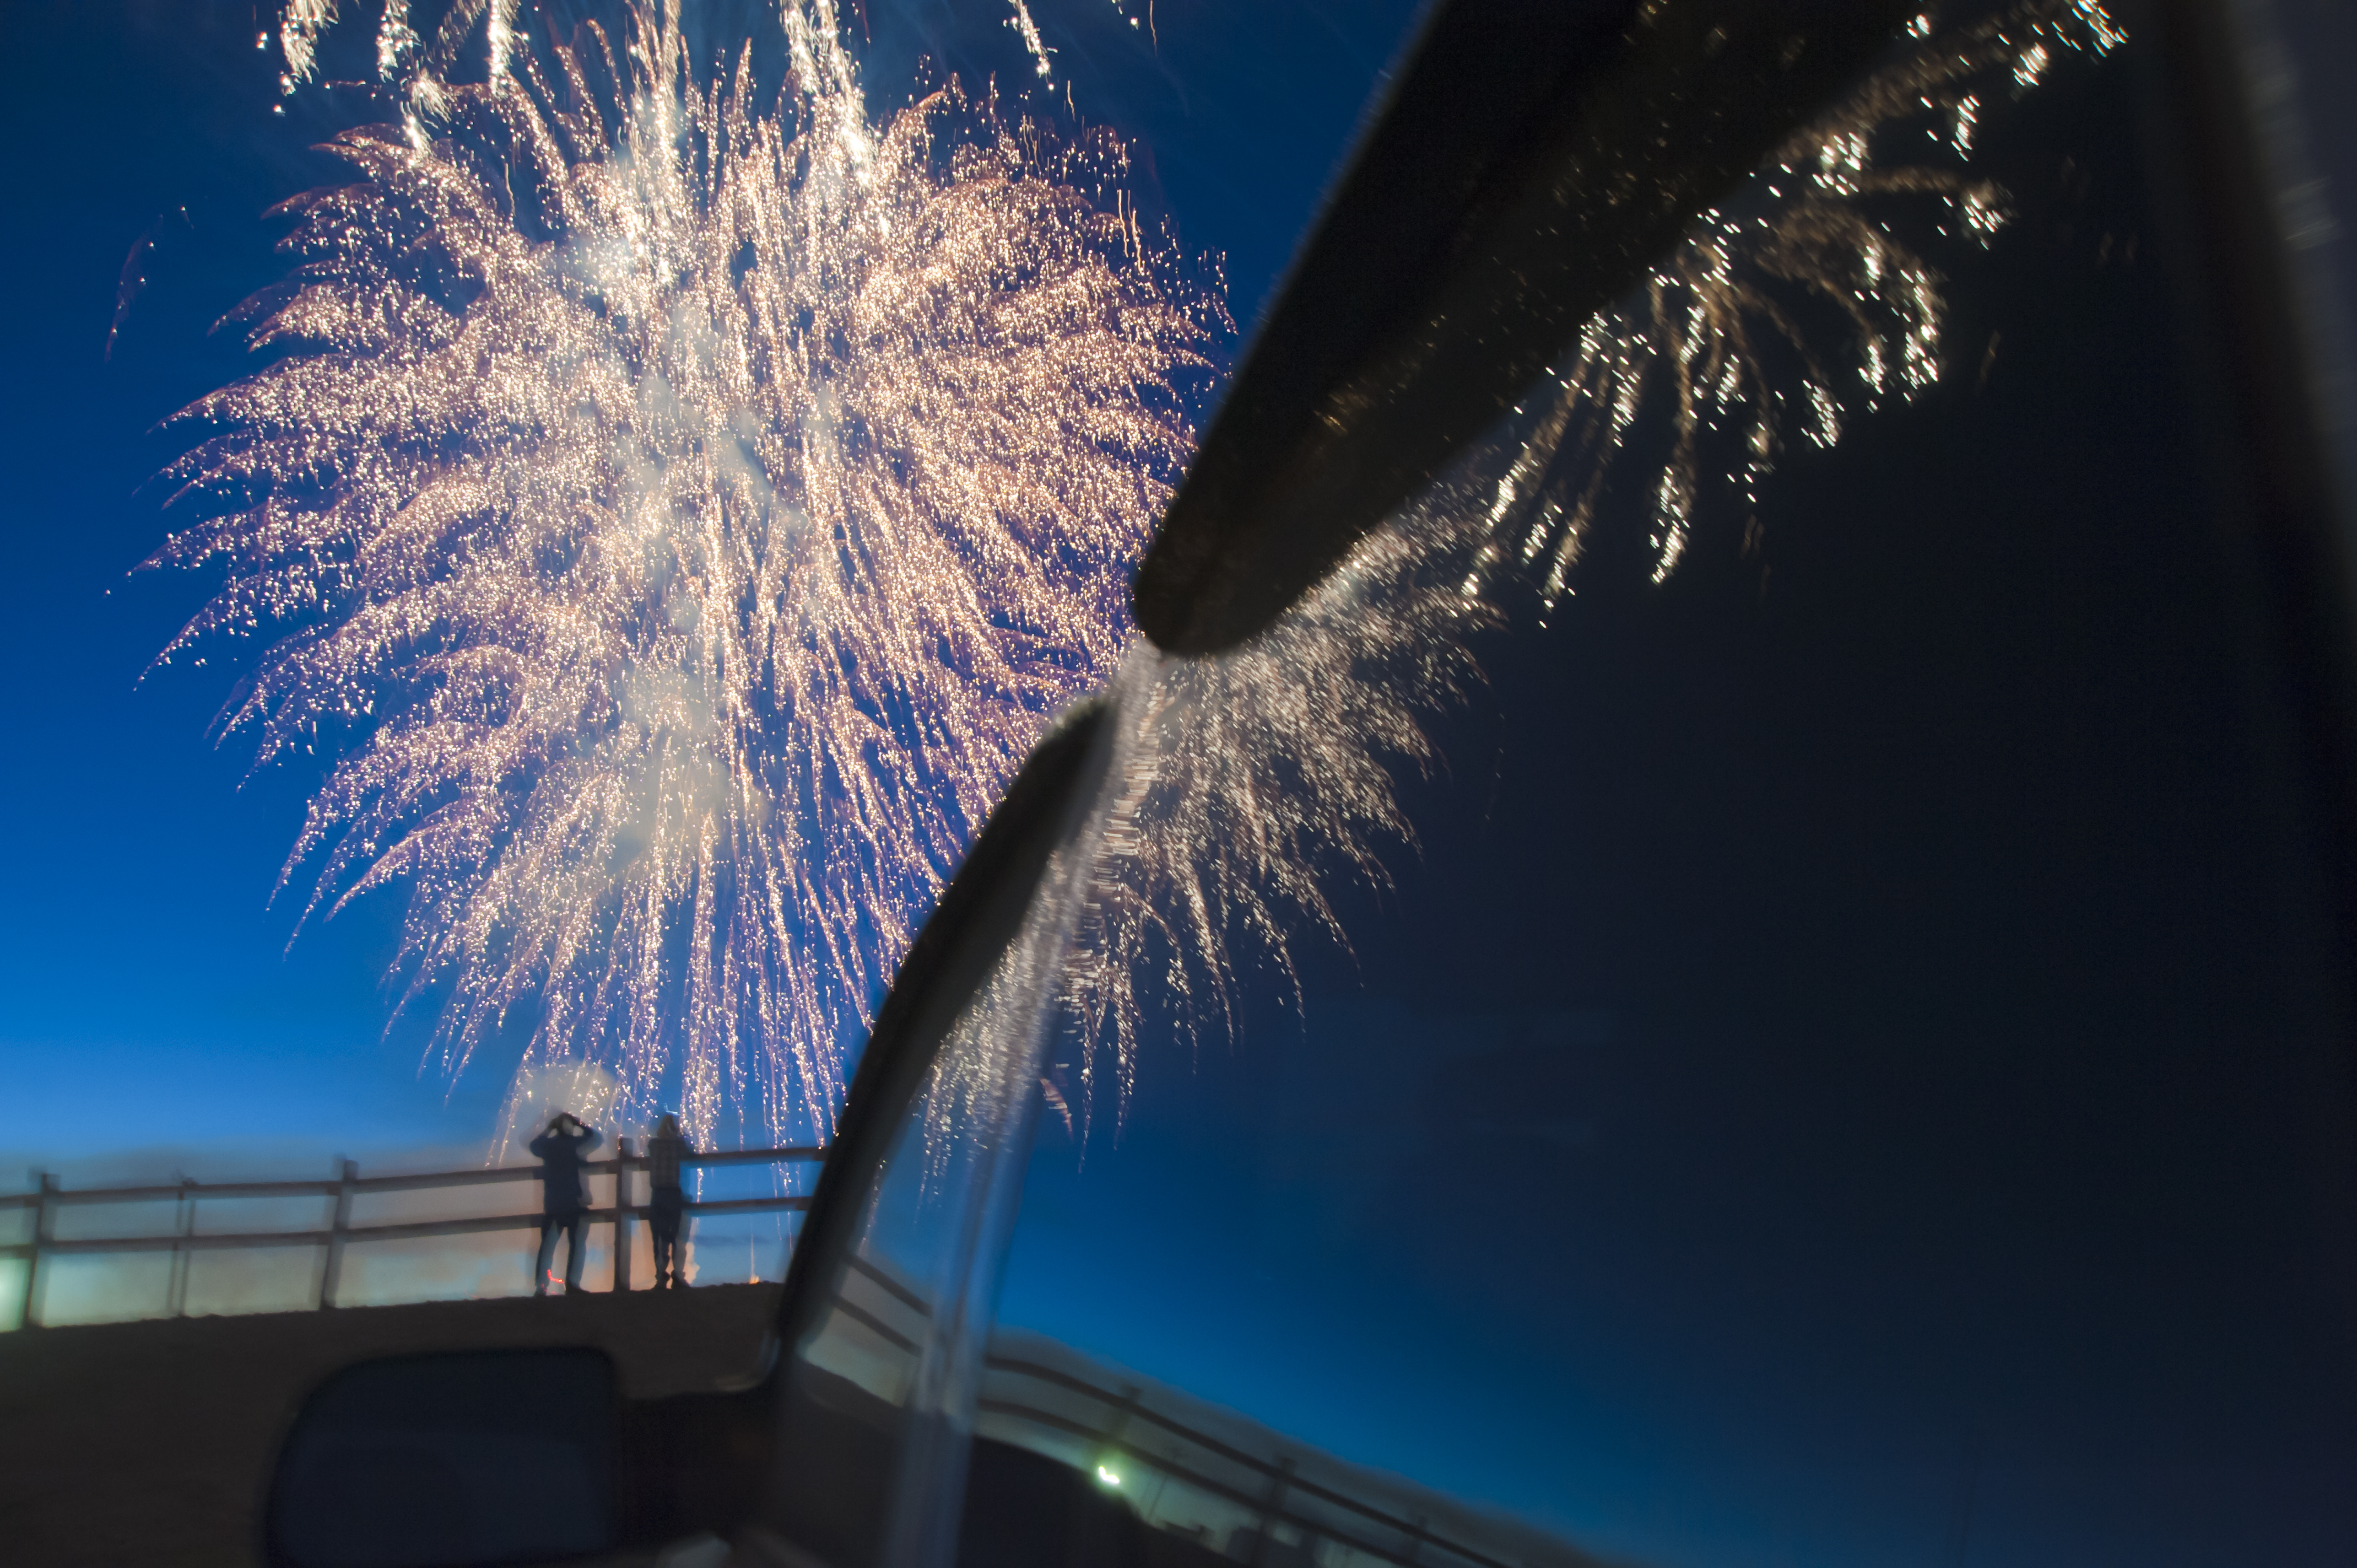 Future of amateur pyrotechnics is dubious